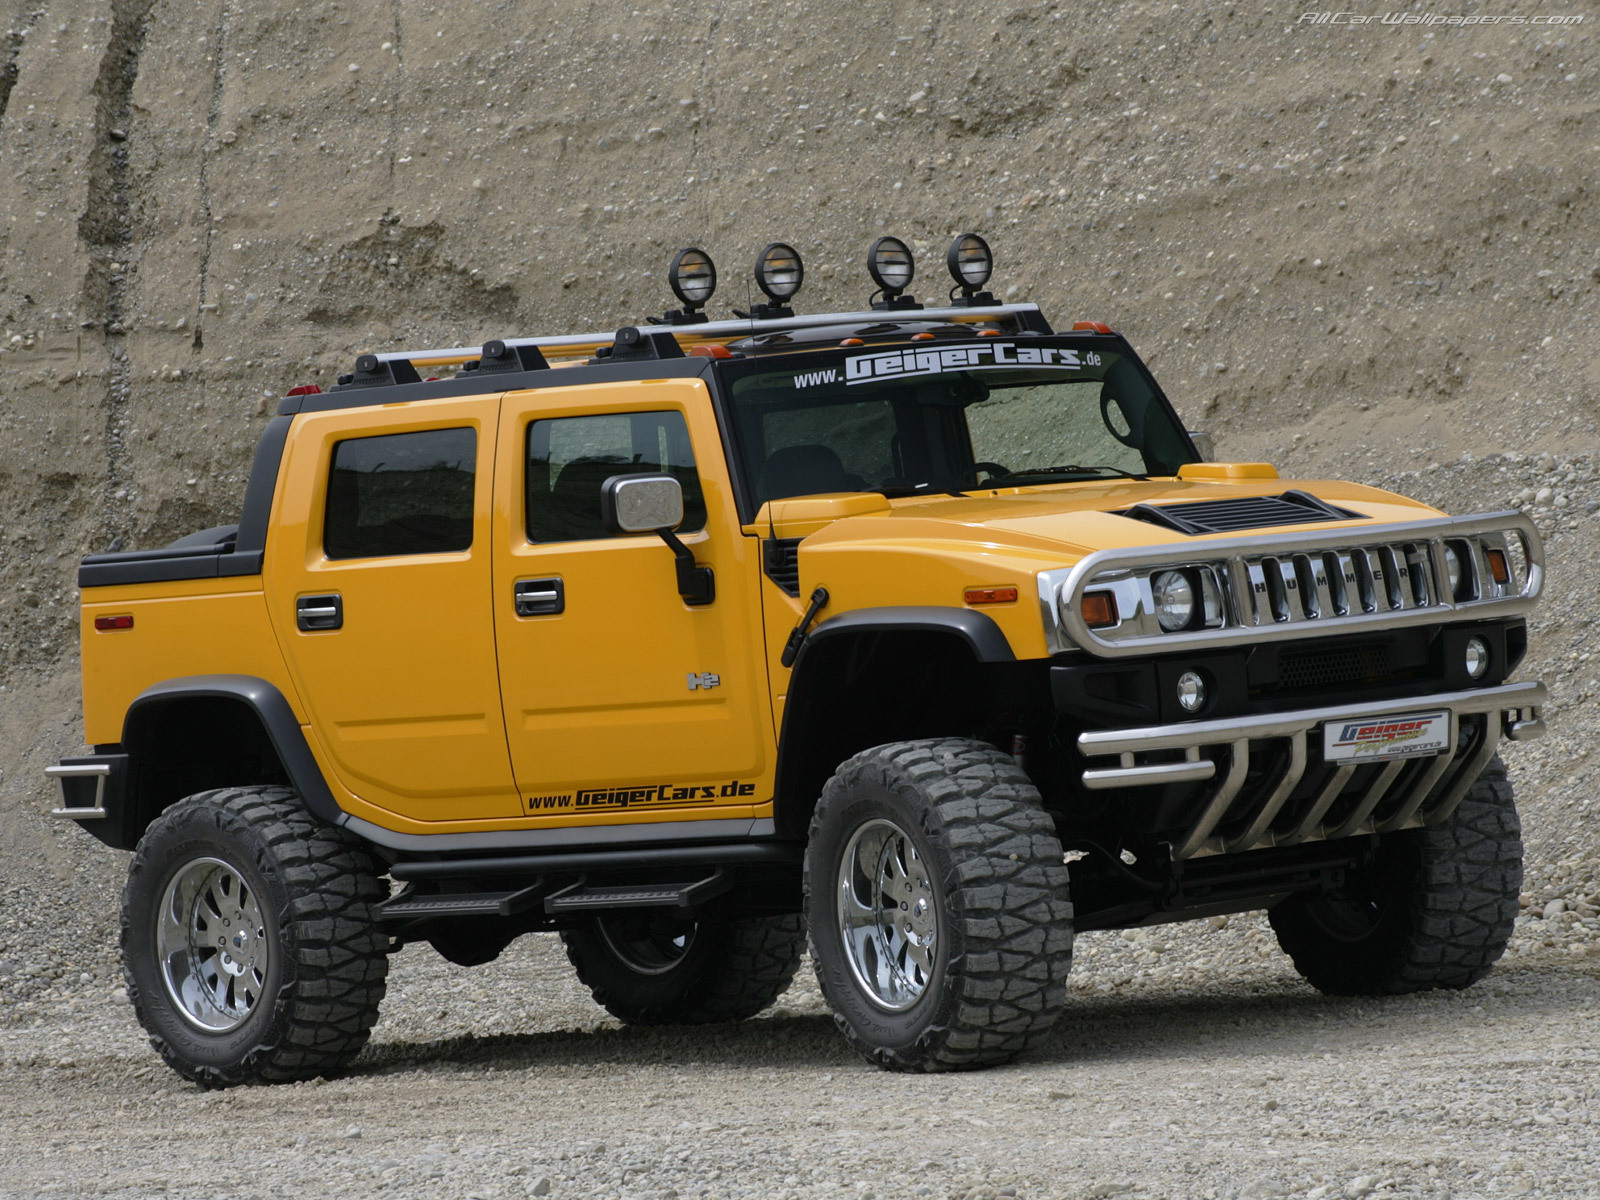 hummer h2 hannibal-pic. 1